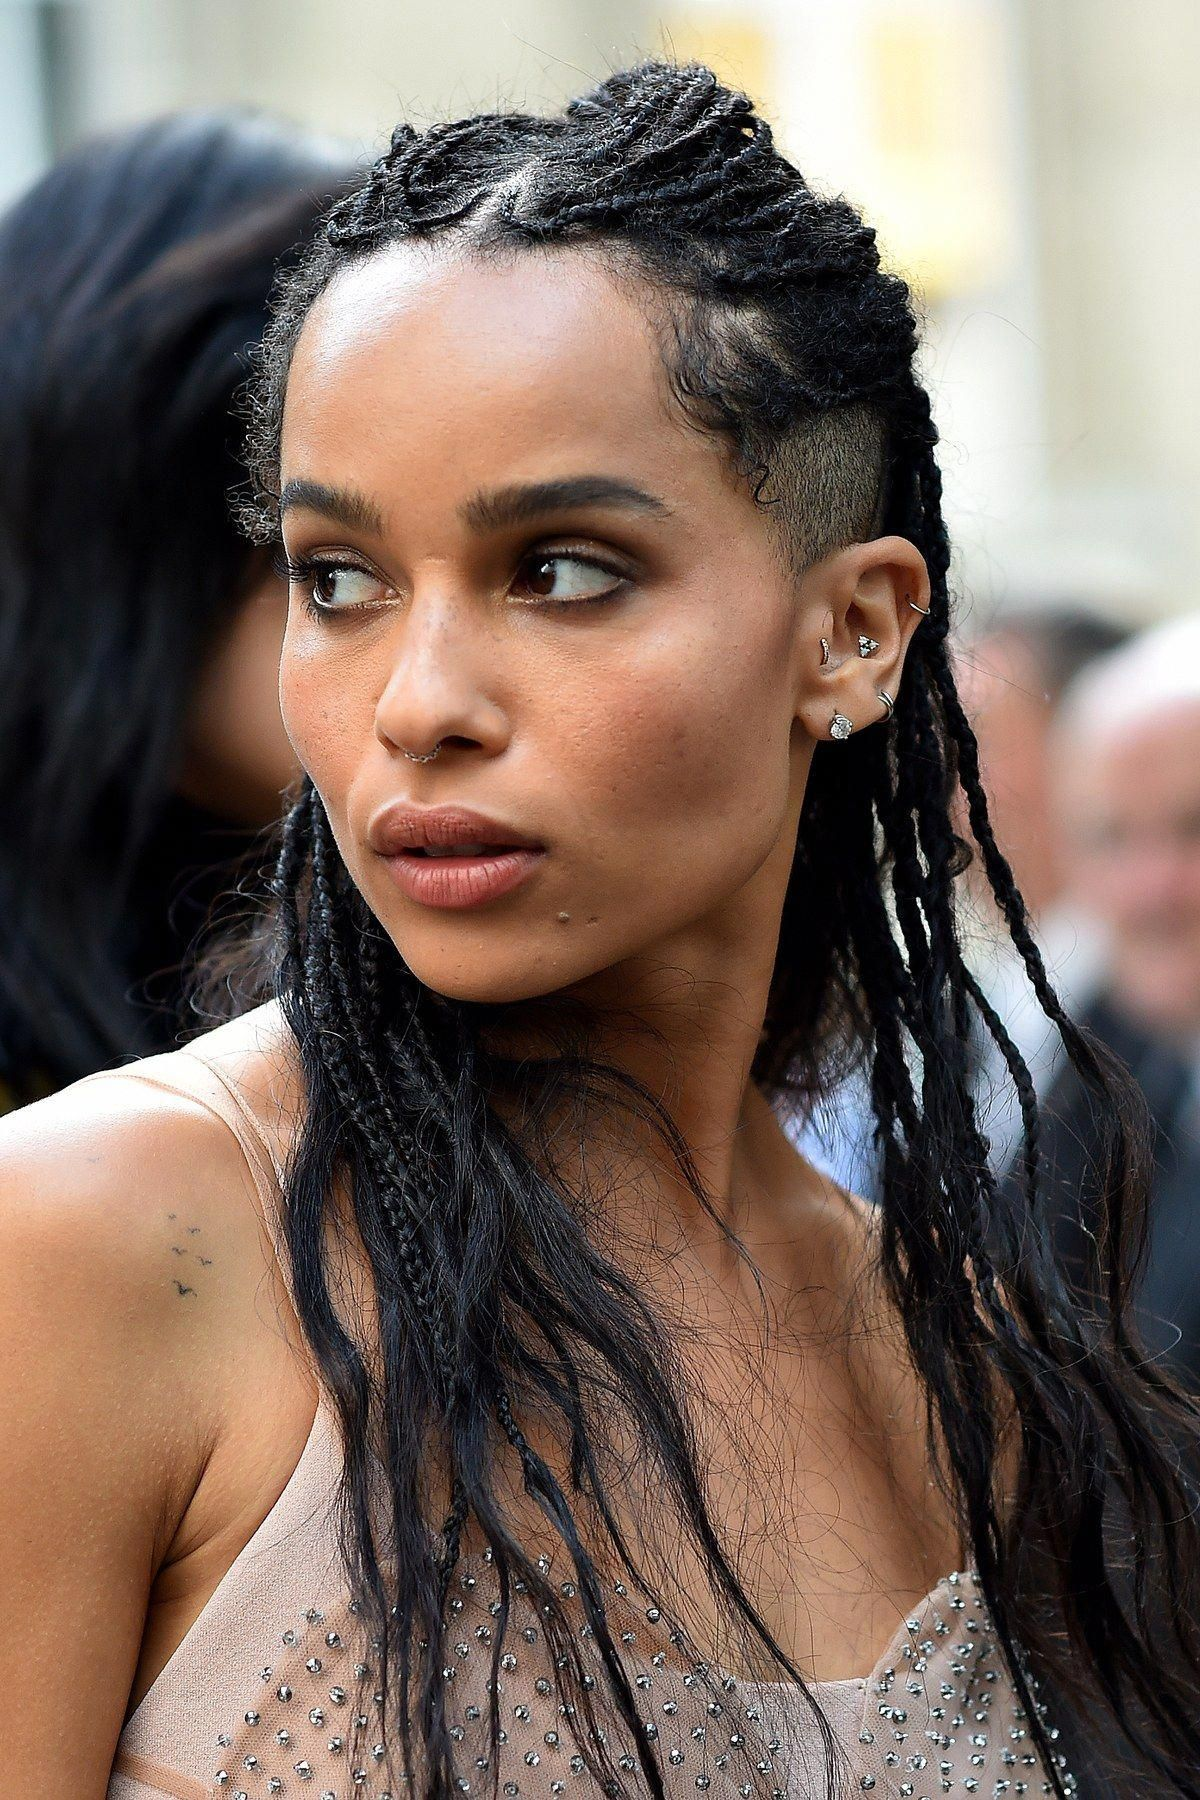 The Best Fall Hairstyle for You, According to Your Horoscope #zoekravitz